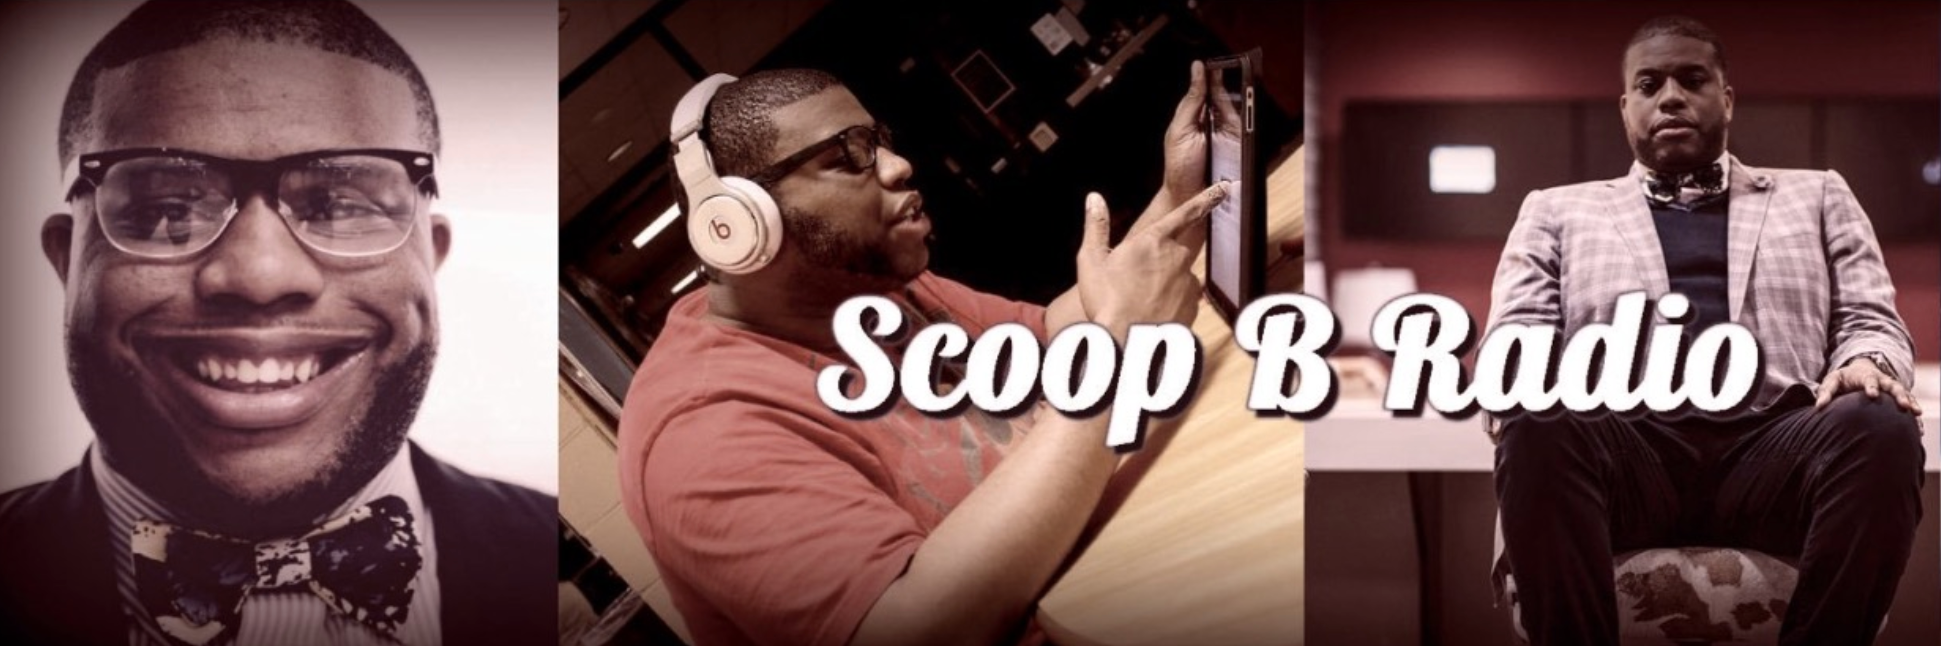 "Brandon ""Scoop B"" Robinson has literally grown up covering professional sports and entertainment for the past two decades, launched Scoop B Radio two years ago, and recently collaborated on his own apparel line with Wooter Apparel. The best part: Scoop B is just getting warmed up."